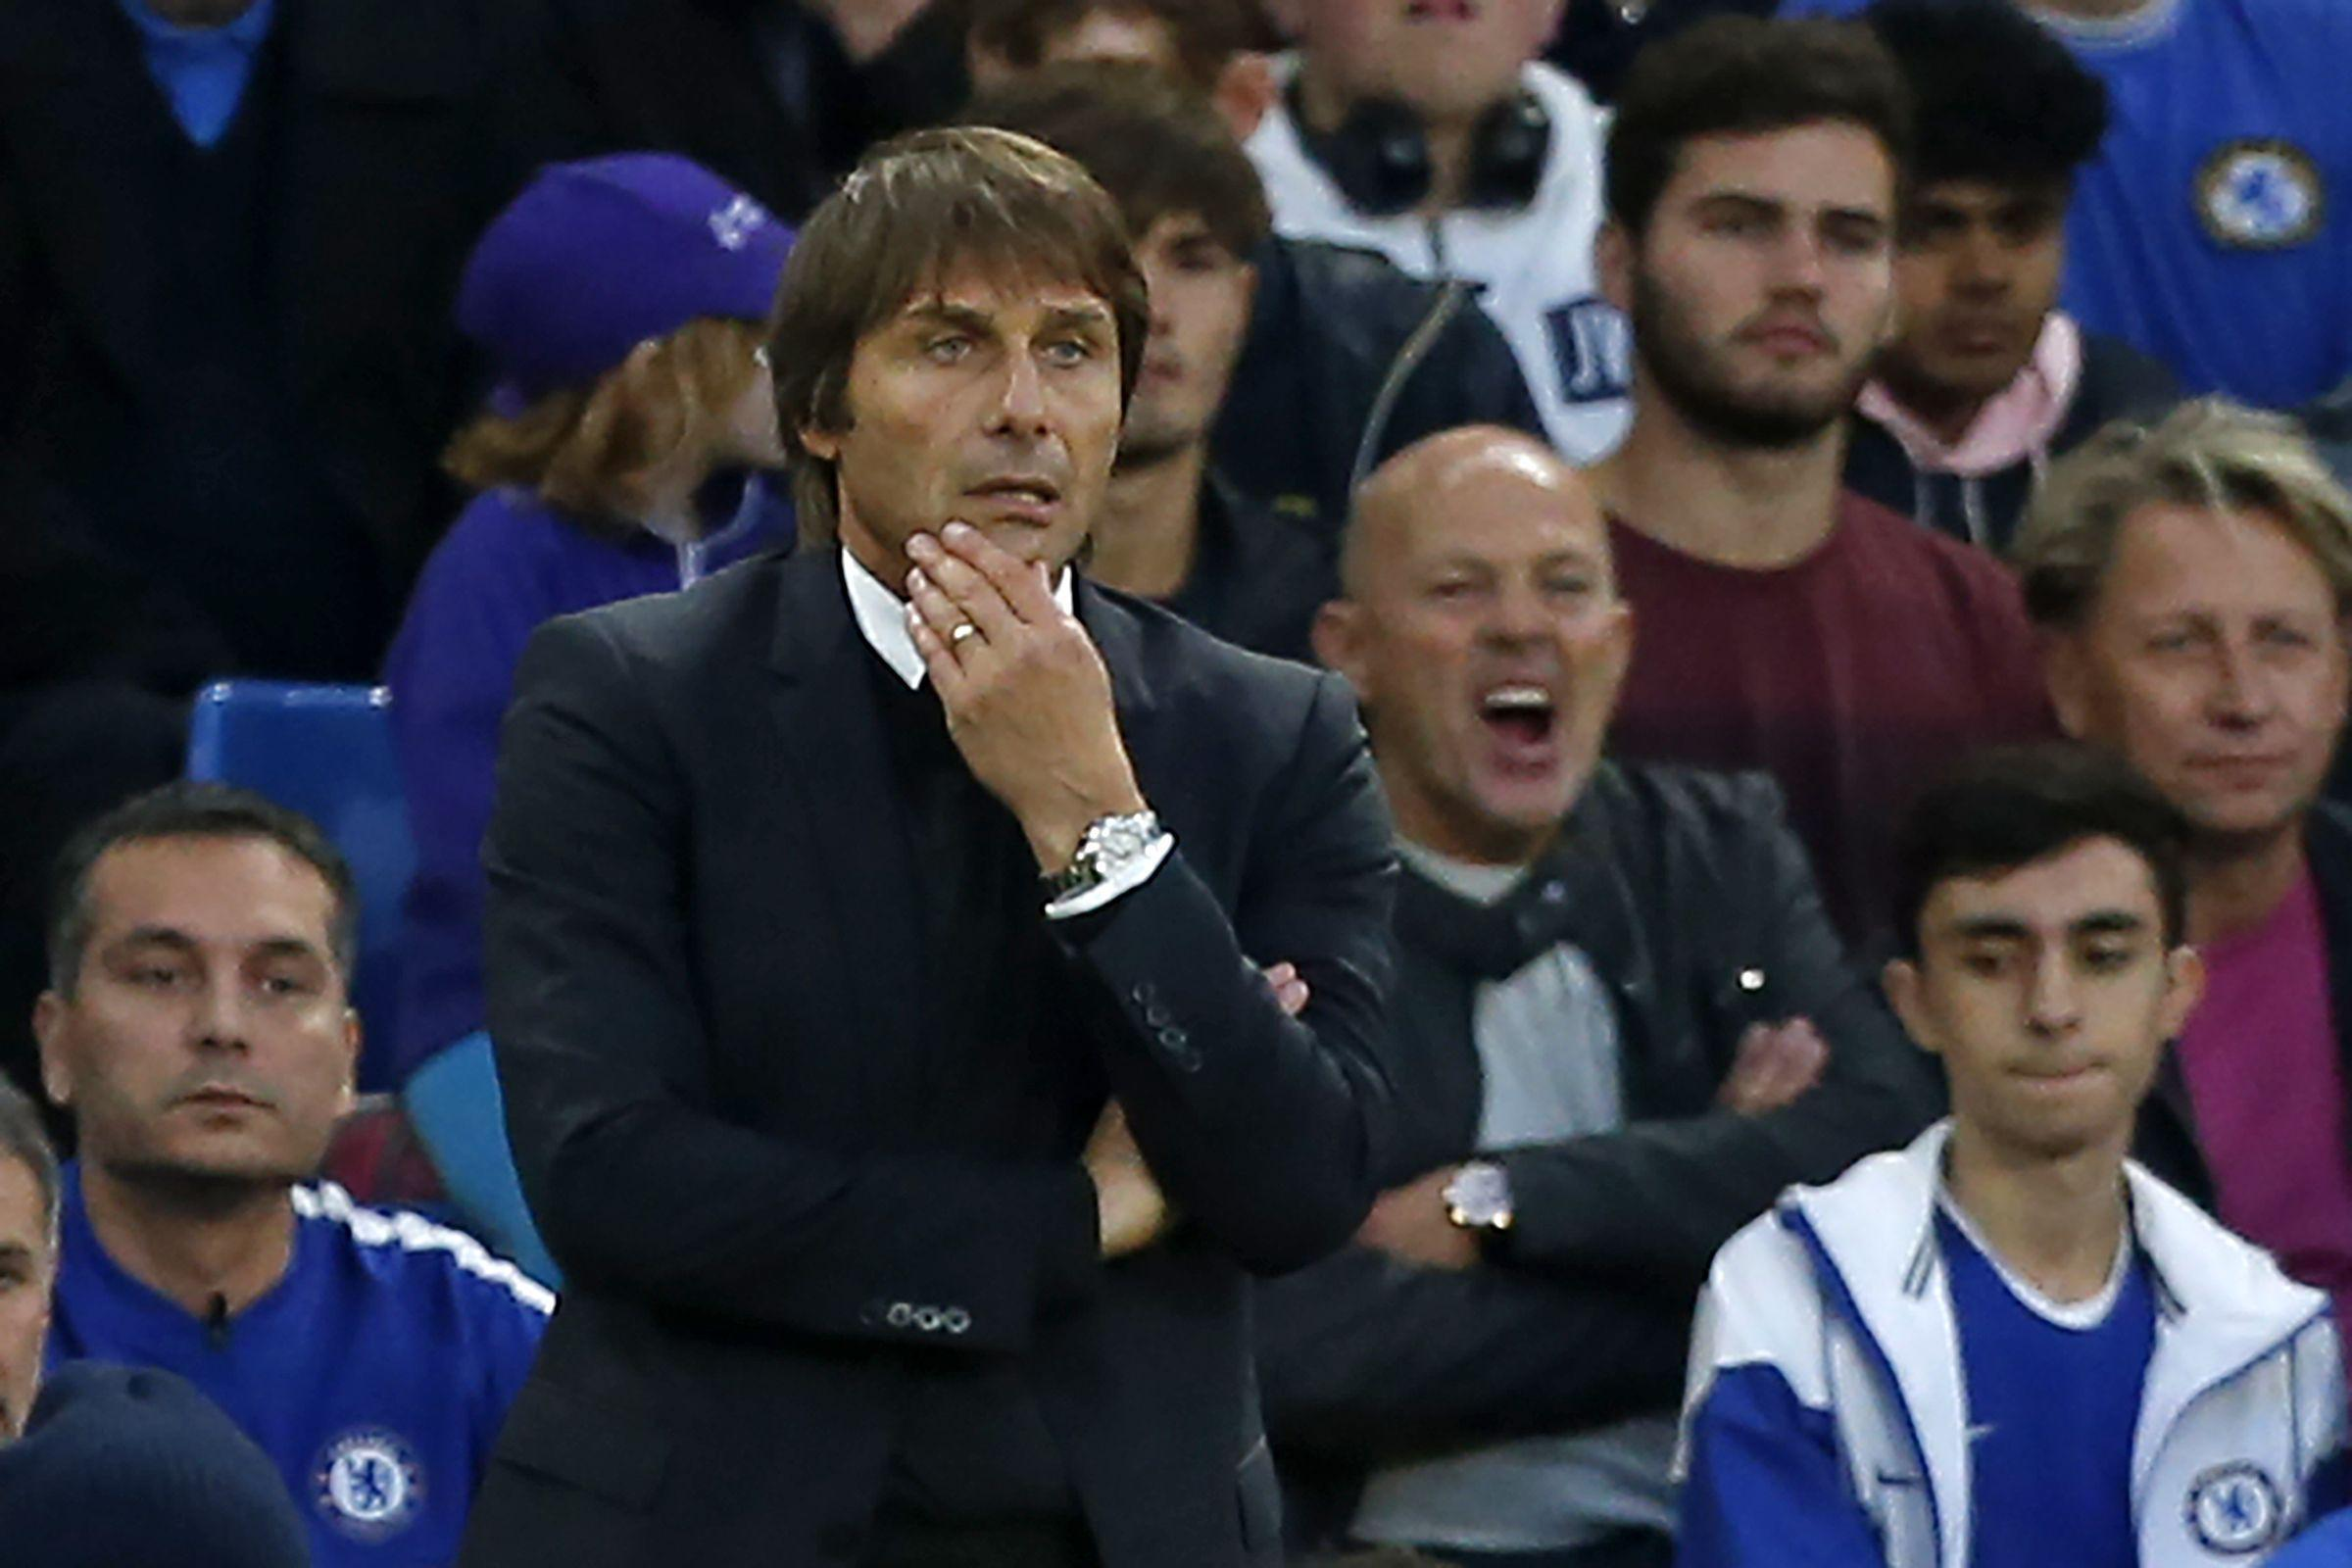 Antonio Conte is now facing a striker crisis at Stamford Bridge